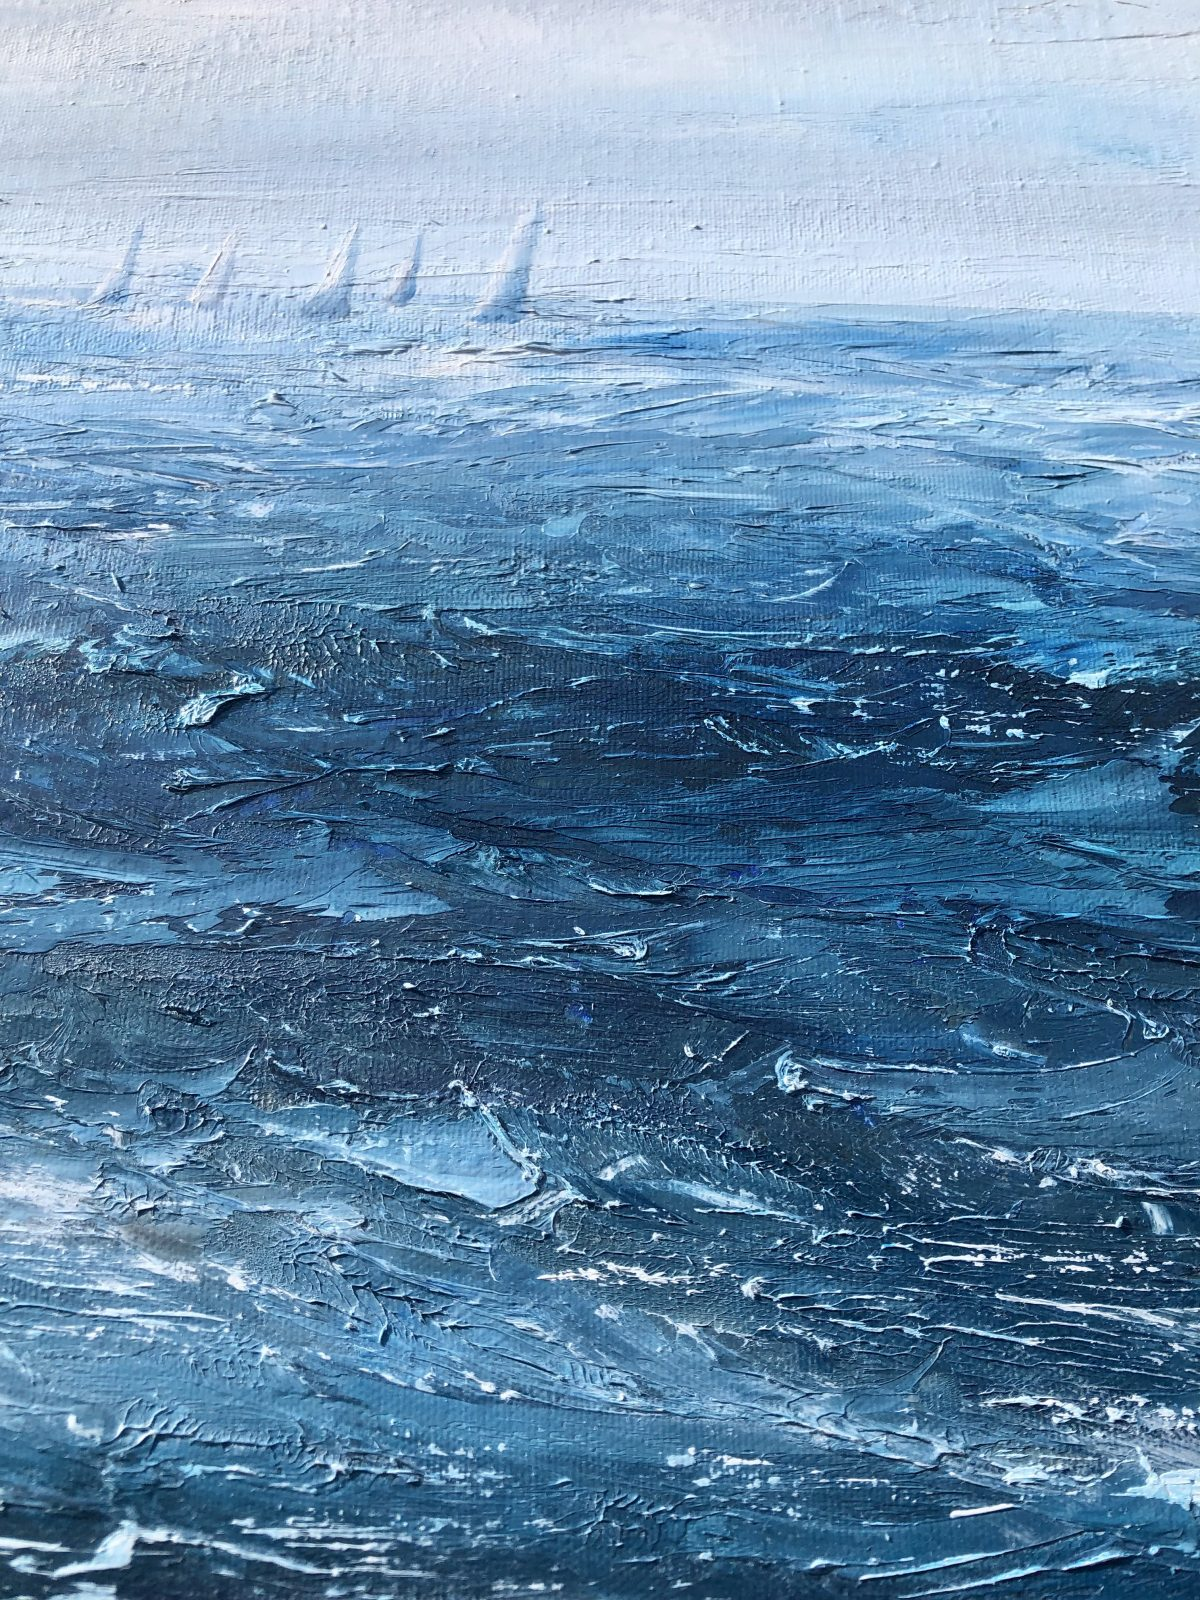 """""""Chasing the leader"""" oil on canvas seascape painting by Devon based artist Catherine Kennedy showing yachts in a race on a blustery day with blue and white waves and white sails"""